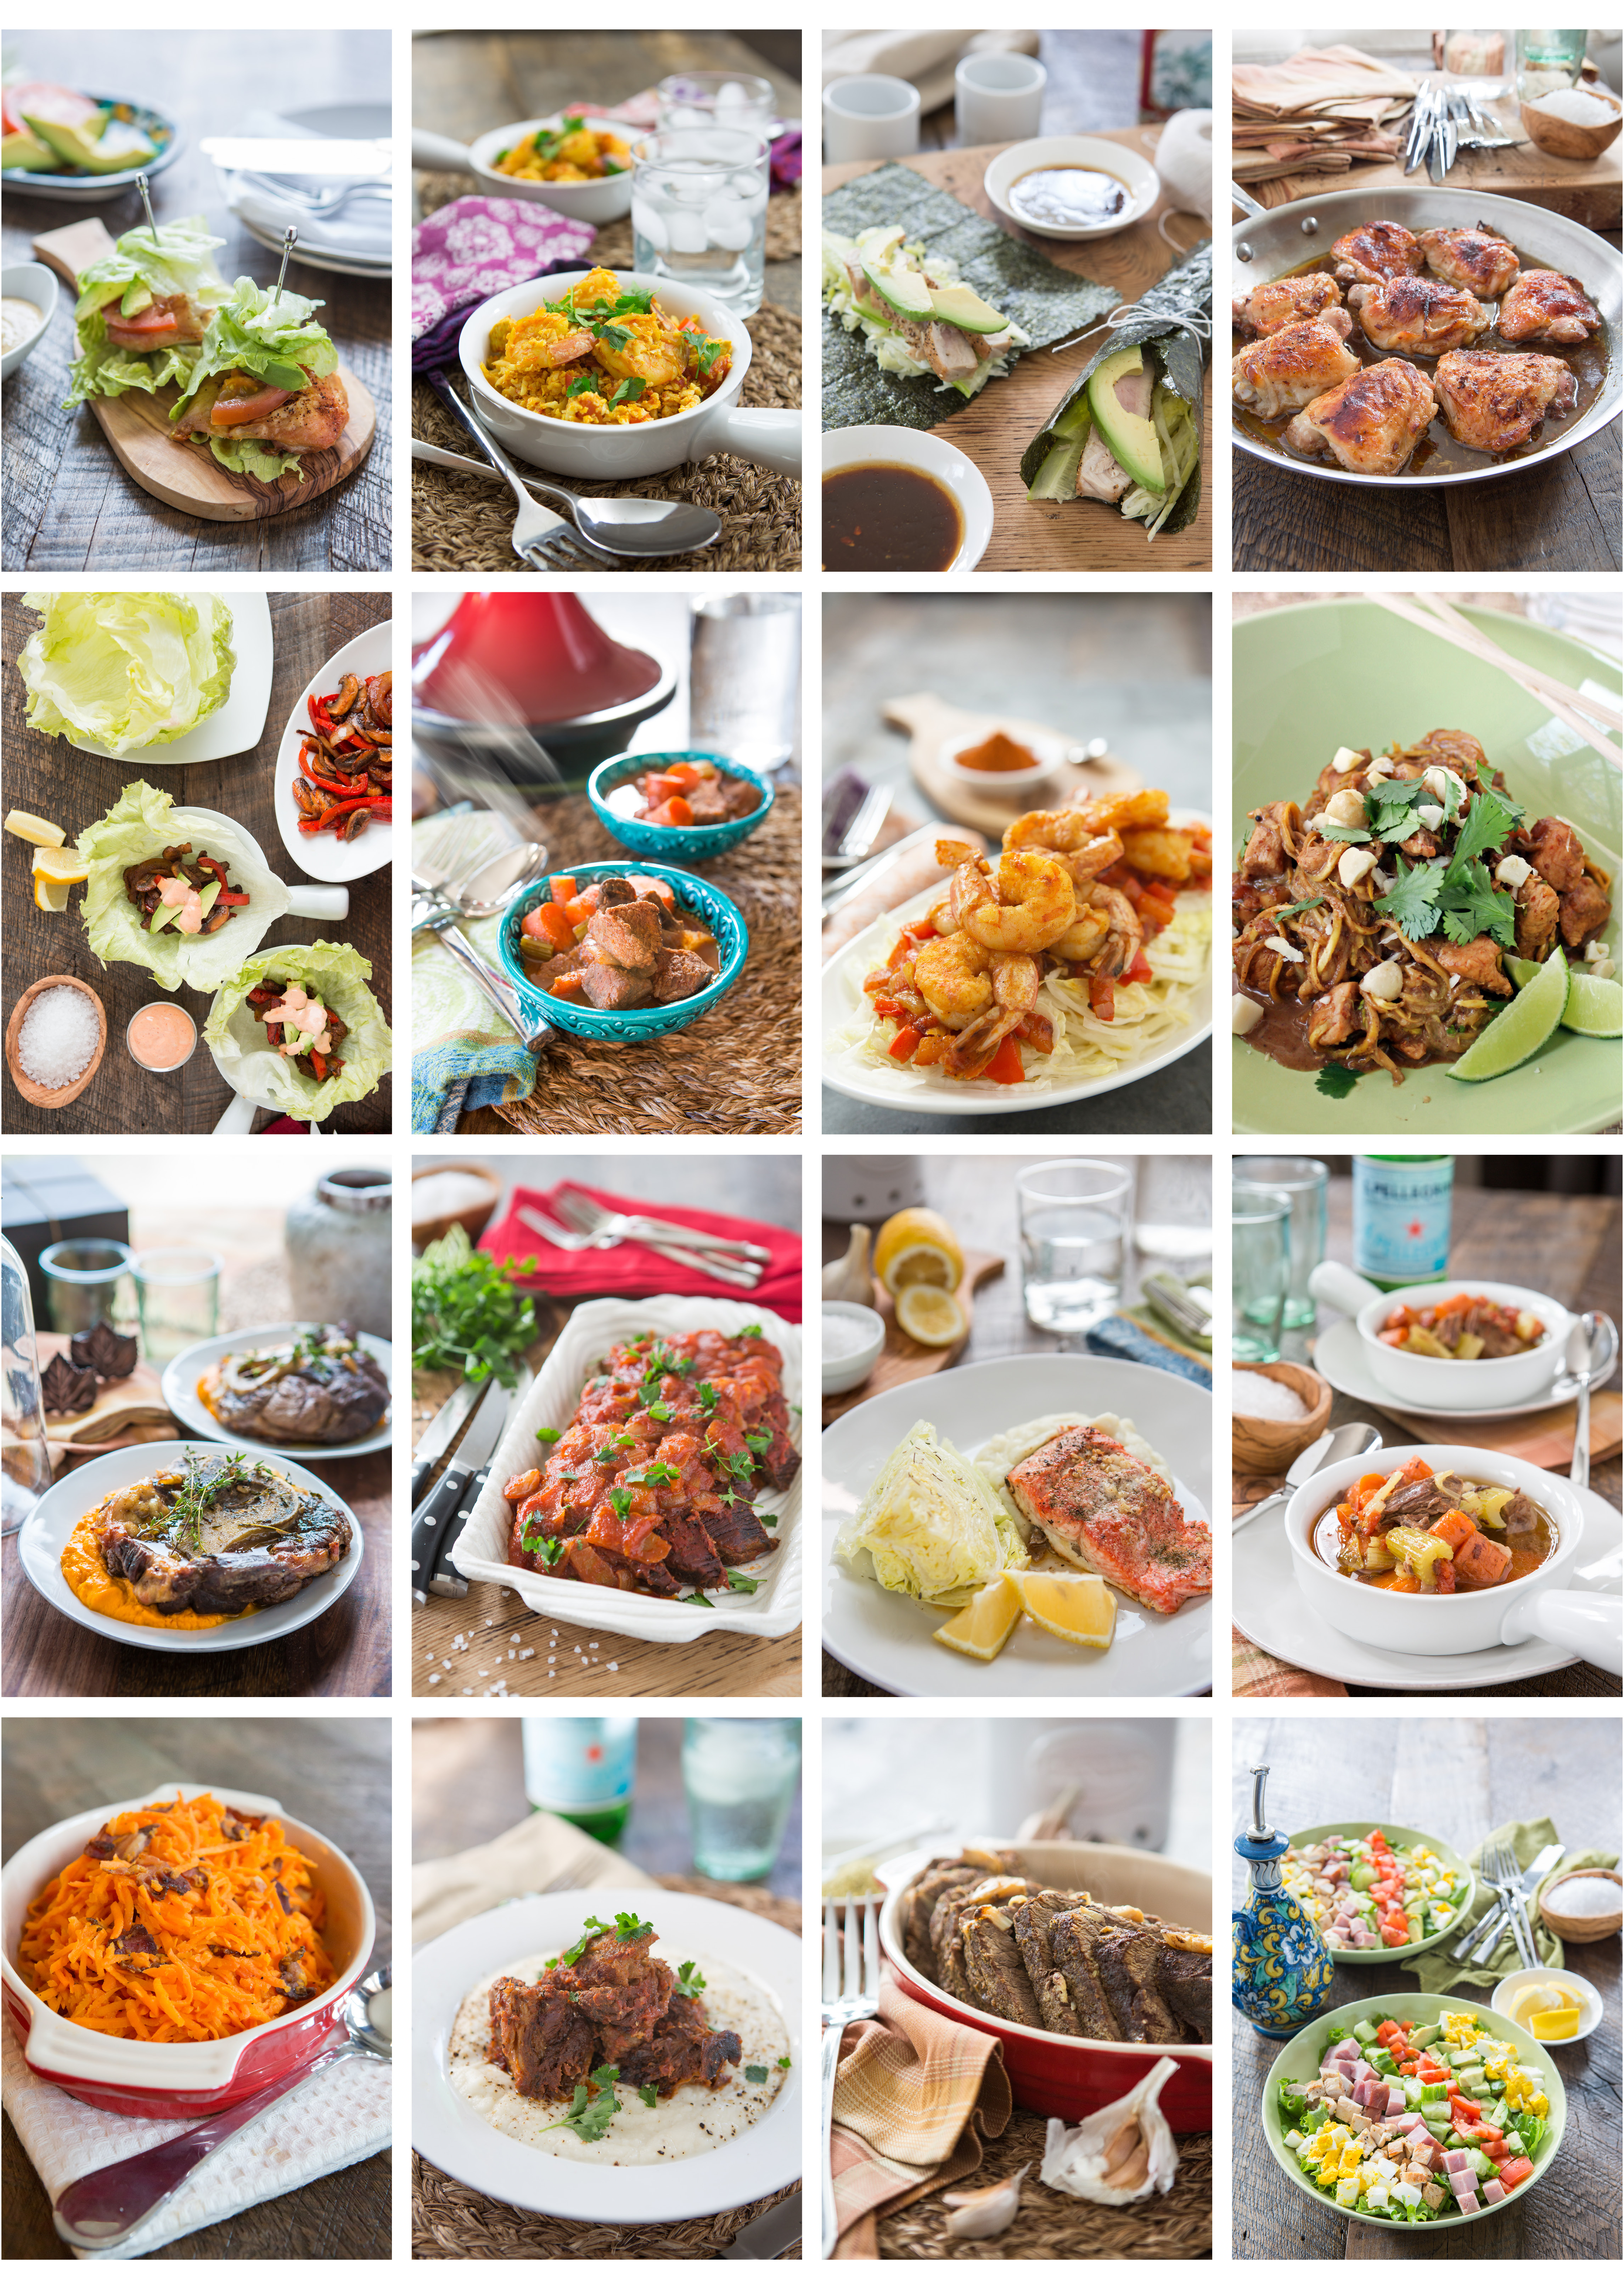 food pics from 30 day guide - 1100 width